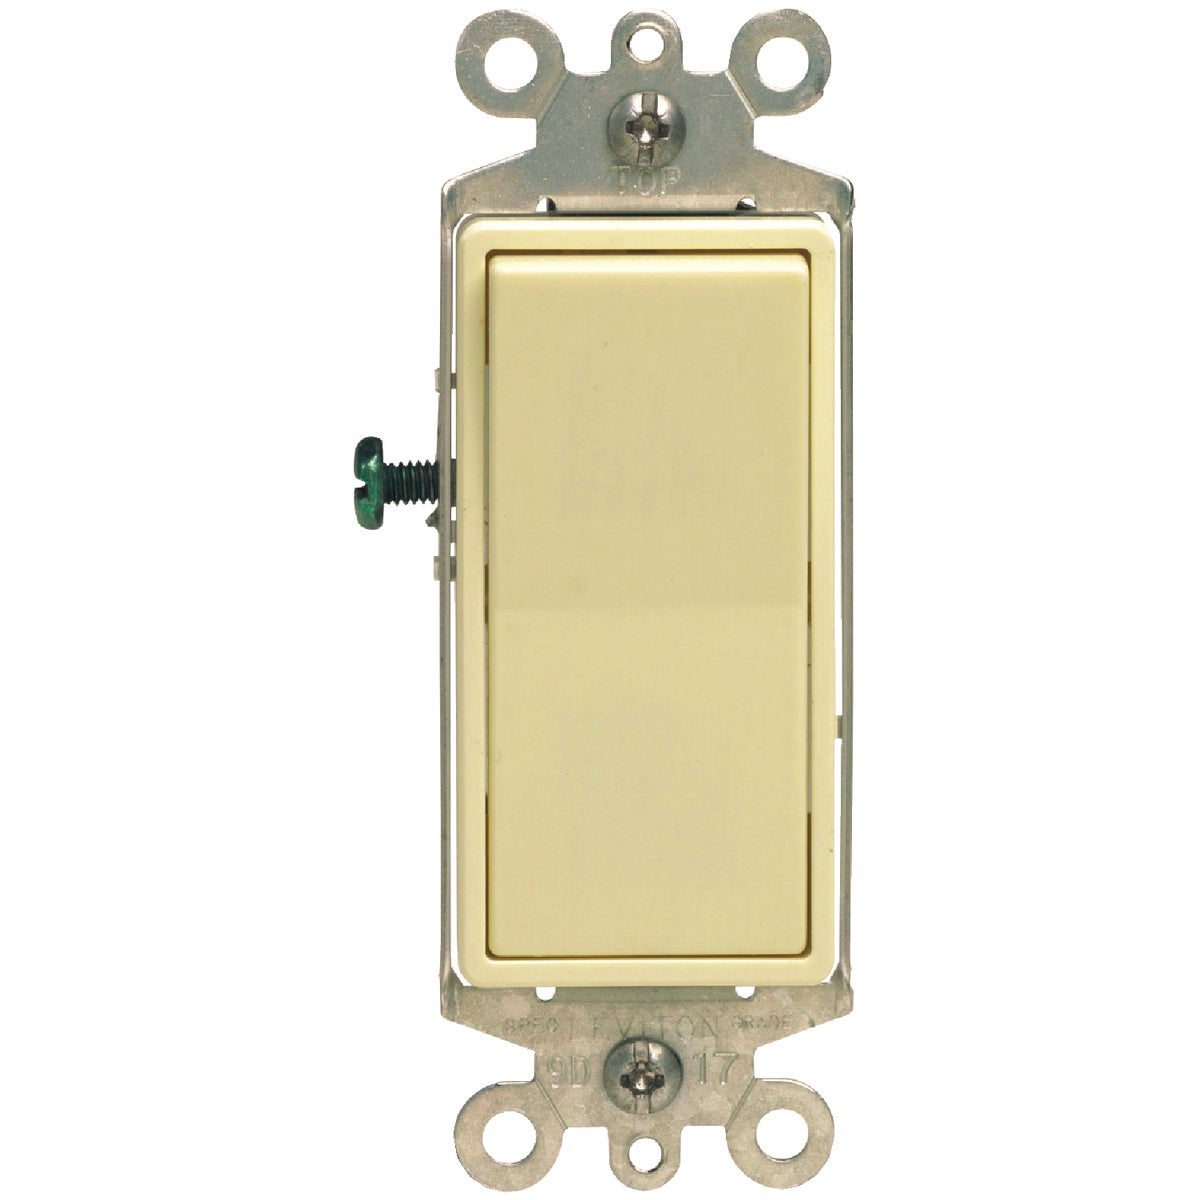 IV 3-WAY GRND SWITCH - 106-5603-2ISP by Leviton Mfg Co